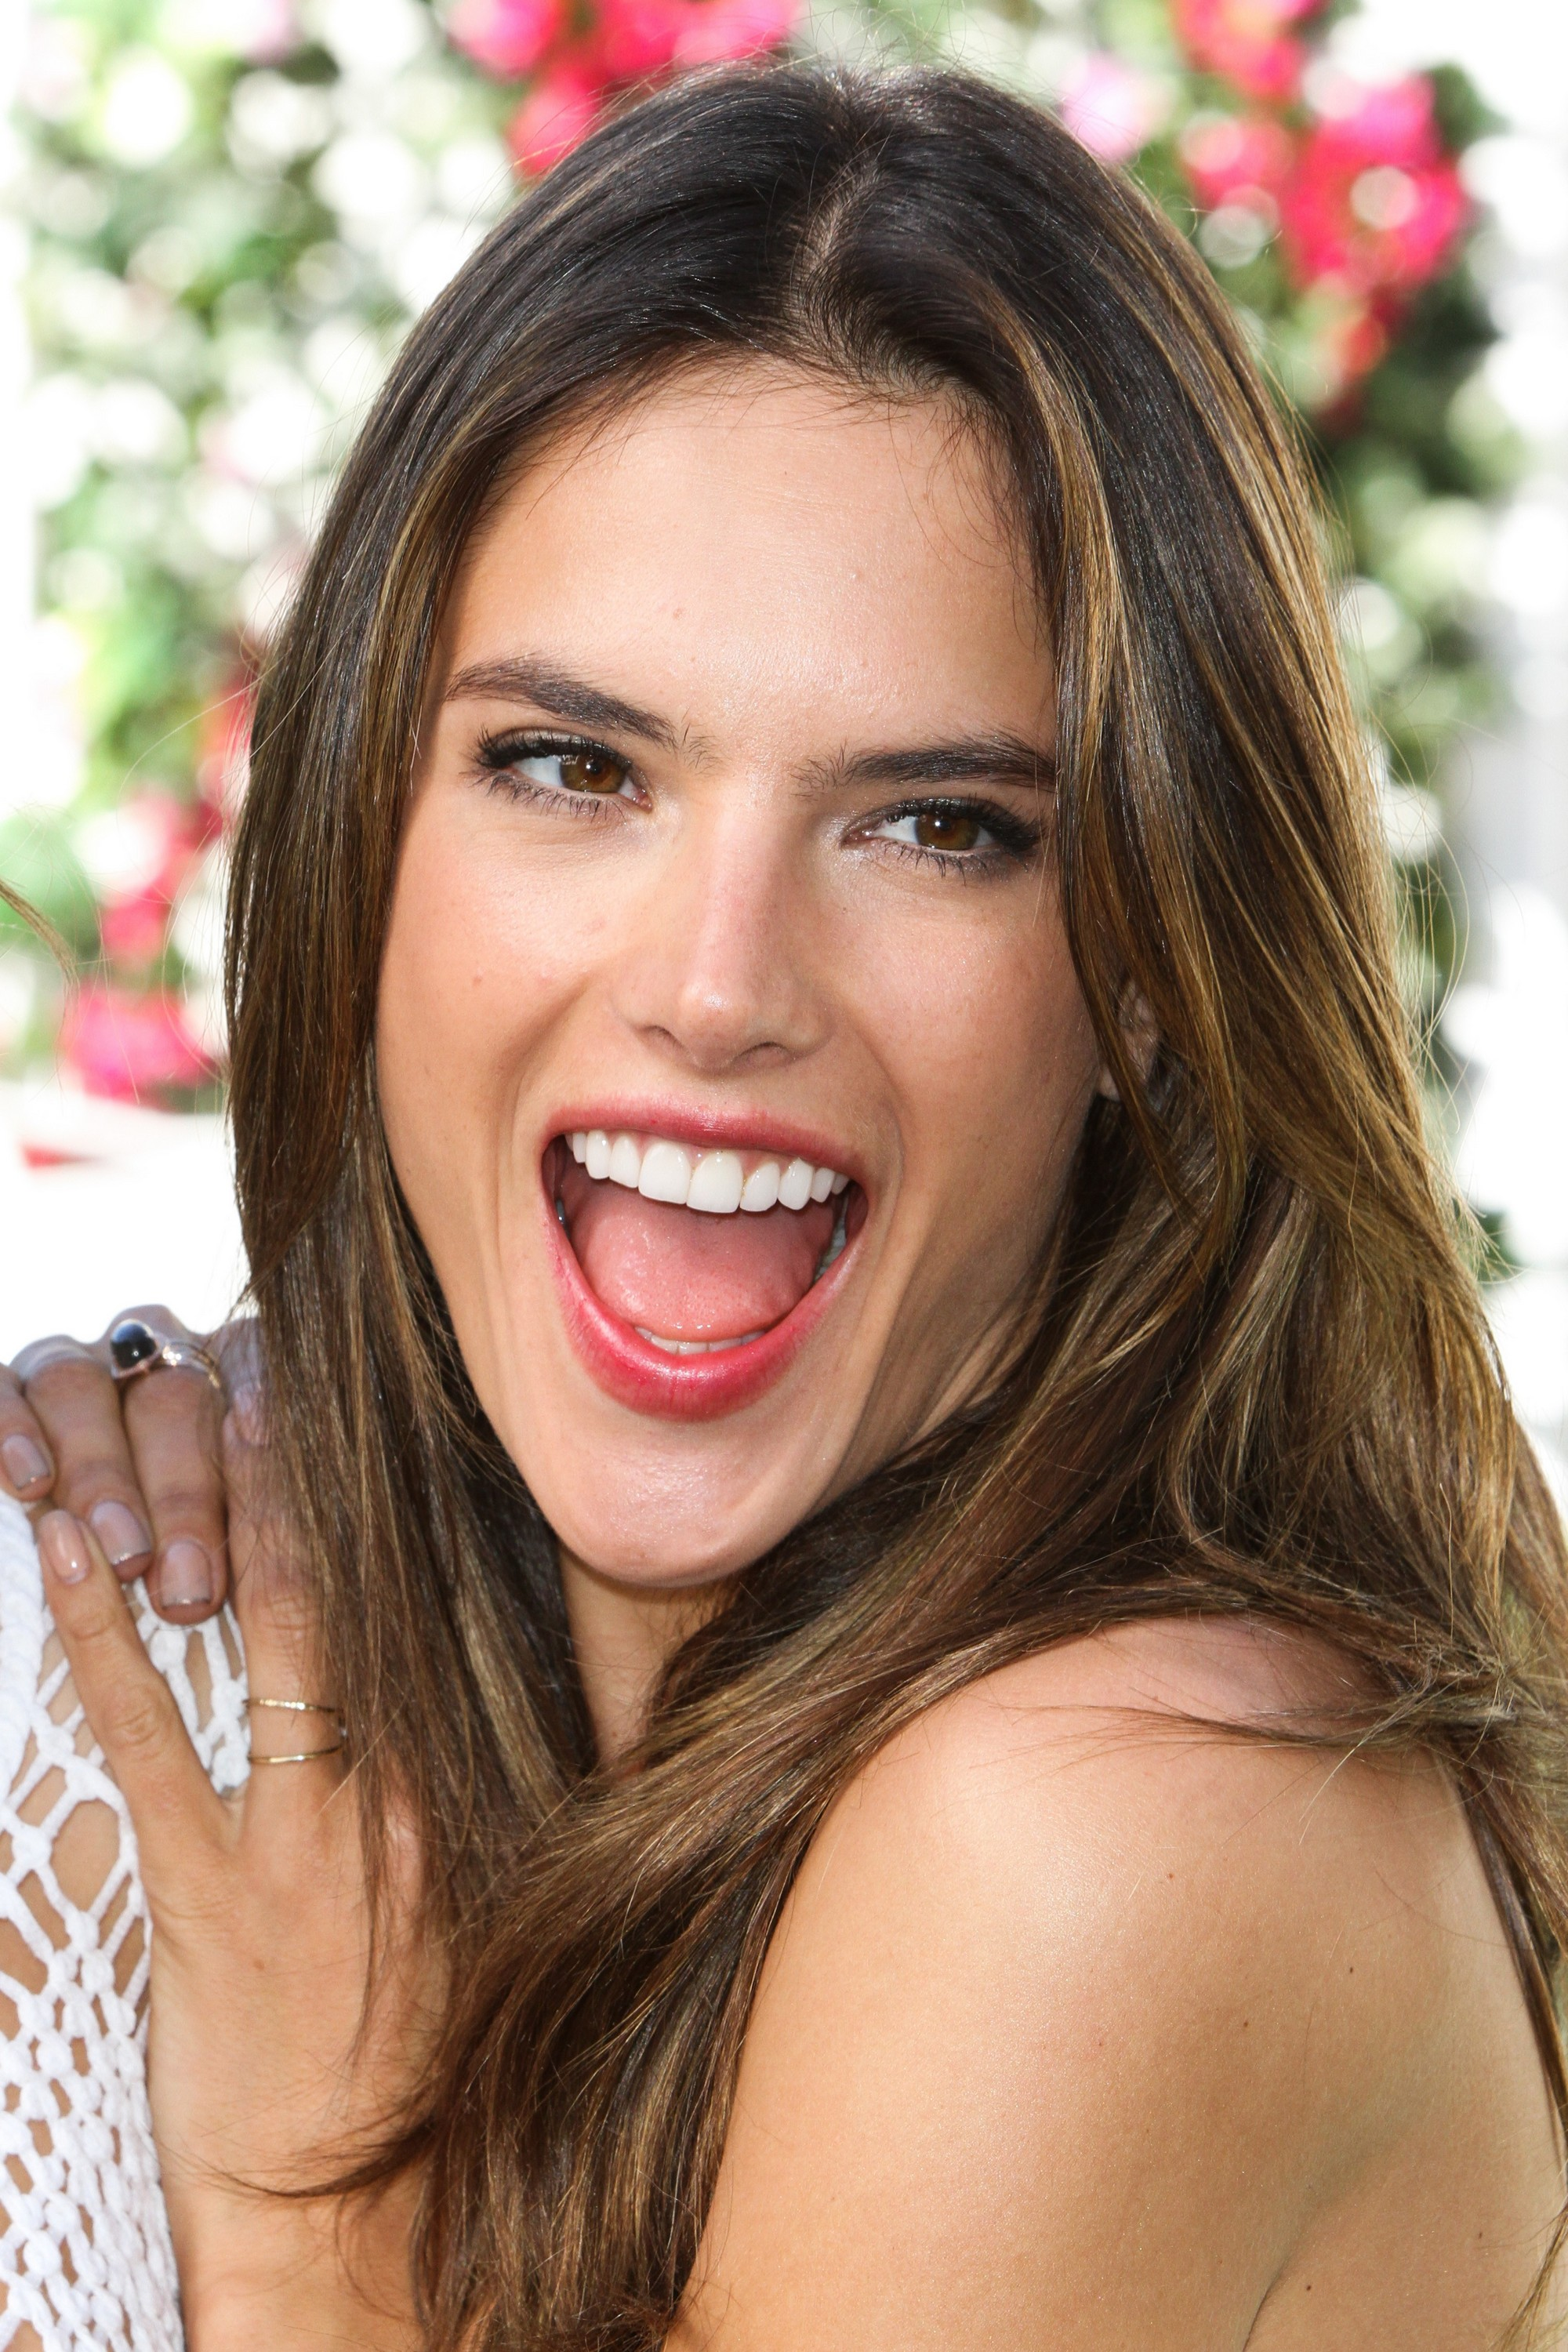 alessandra ambrosio photo 3297 of 6465 pics wallpaper